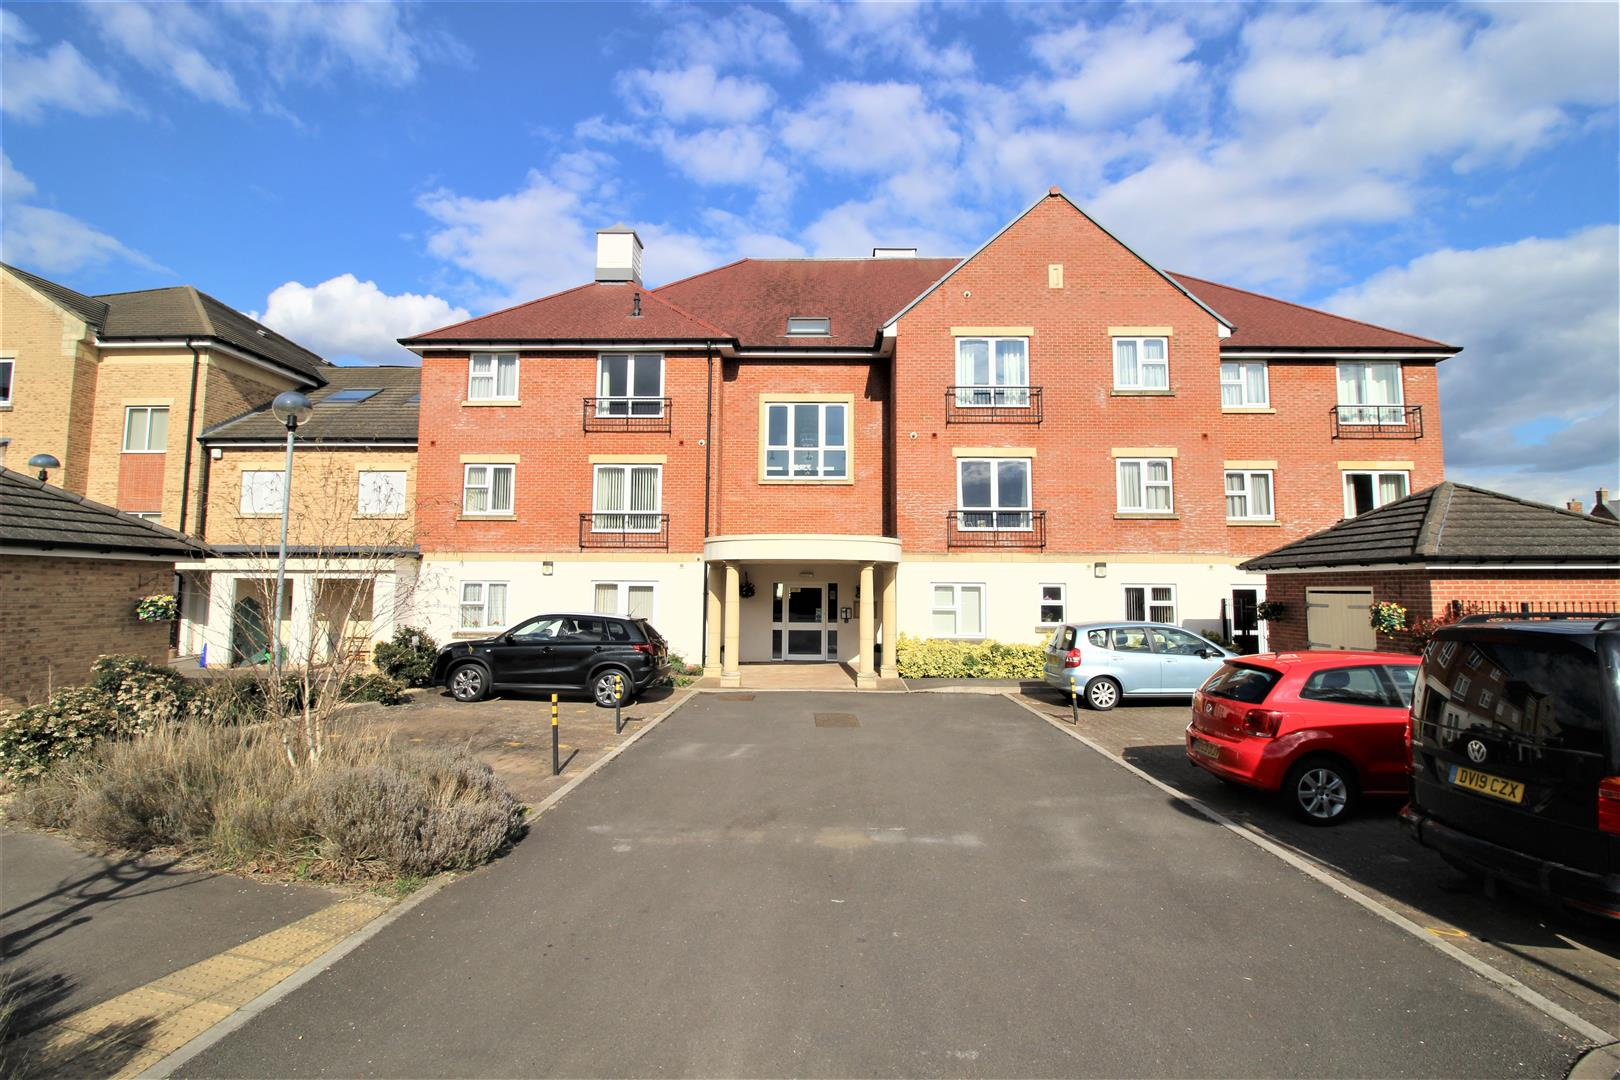 Orchid Court, Guernsey Lane, Swindon Image 1